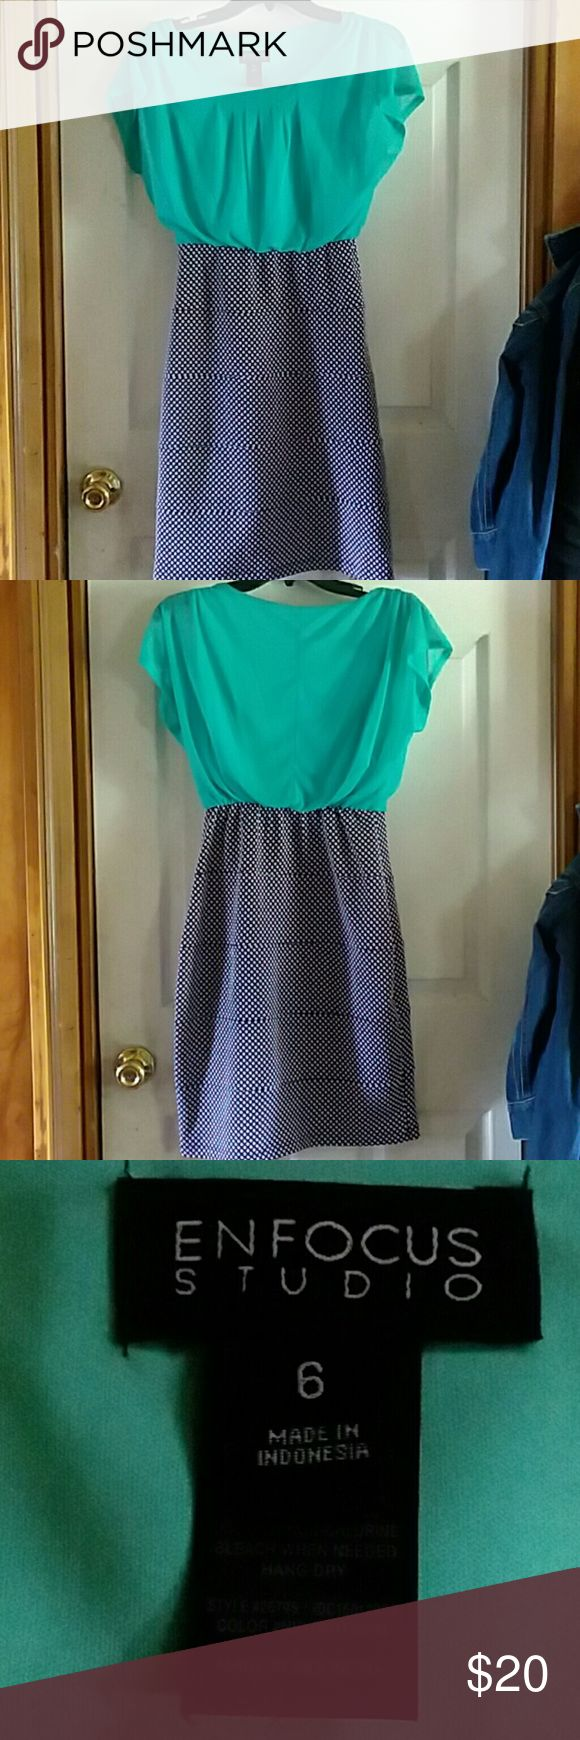 ENFOCUS STUDIO cocktail dress Beautiful mint with black and white polka dots cocktail dress,worn only once ,size 6 Enfocus studio Dresses Midi